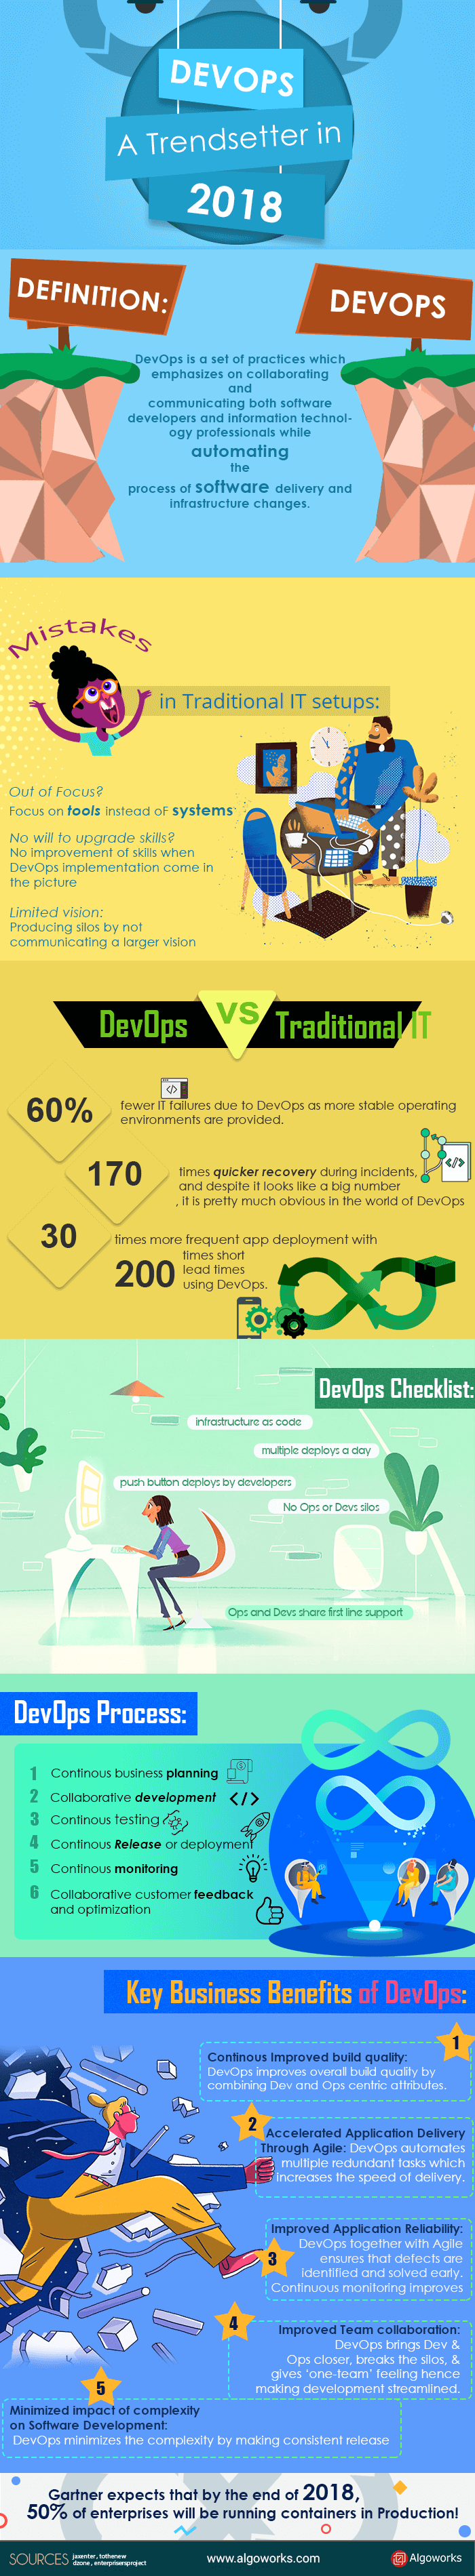 DevOps – A Trendsetter In 2018 | An Infographic